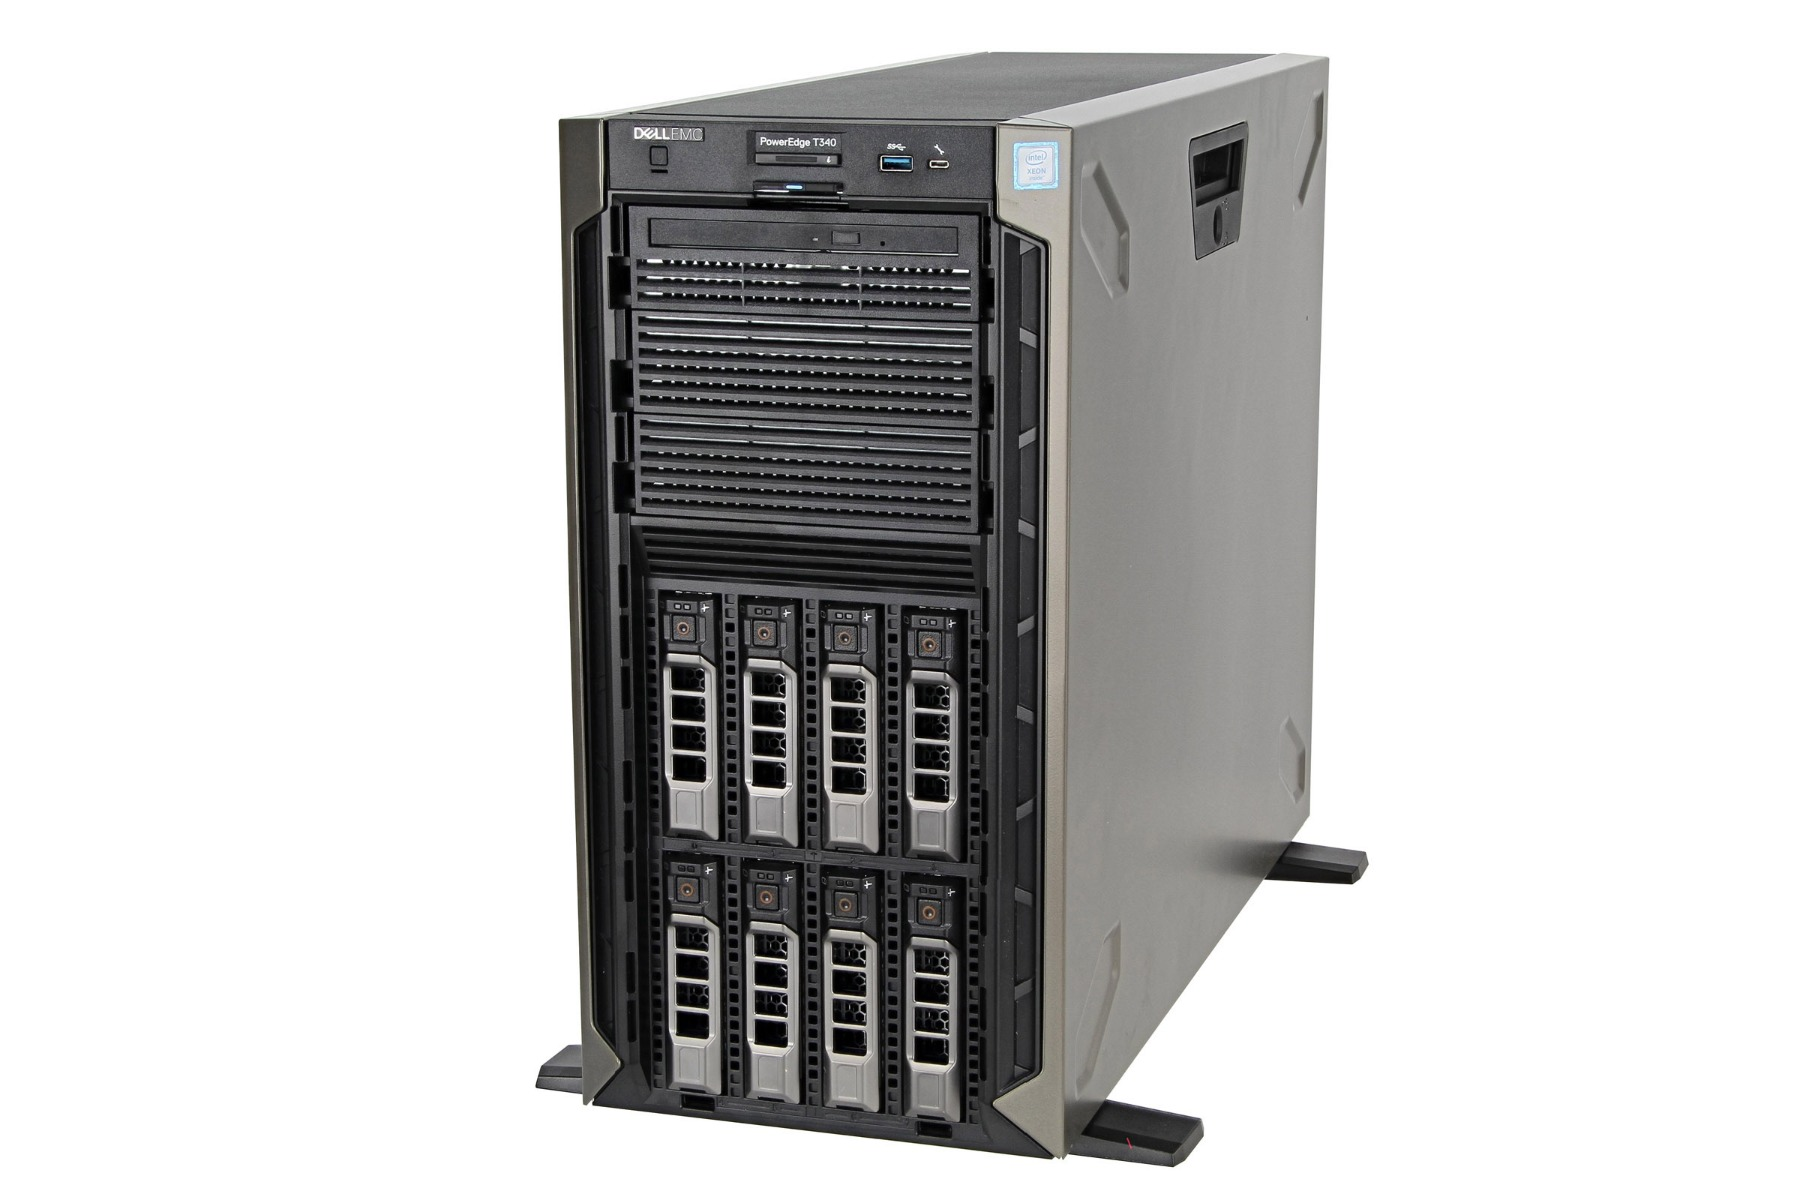 Configure your own Dell PowerEdge T340